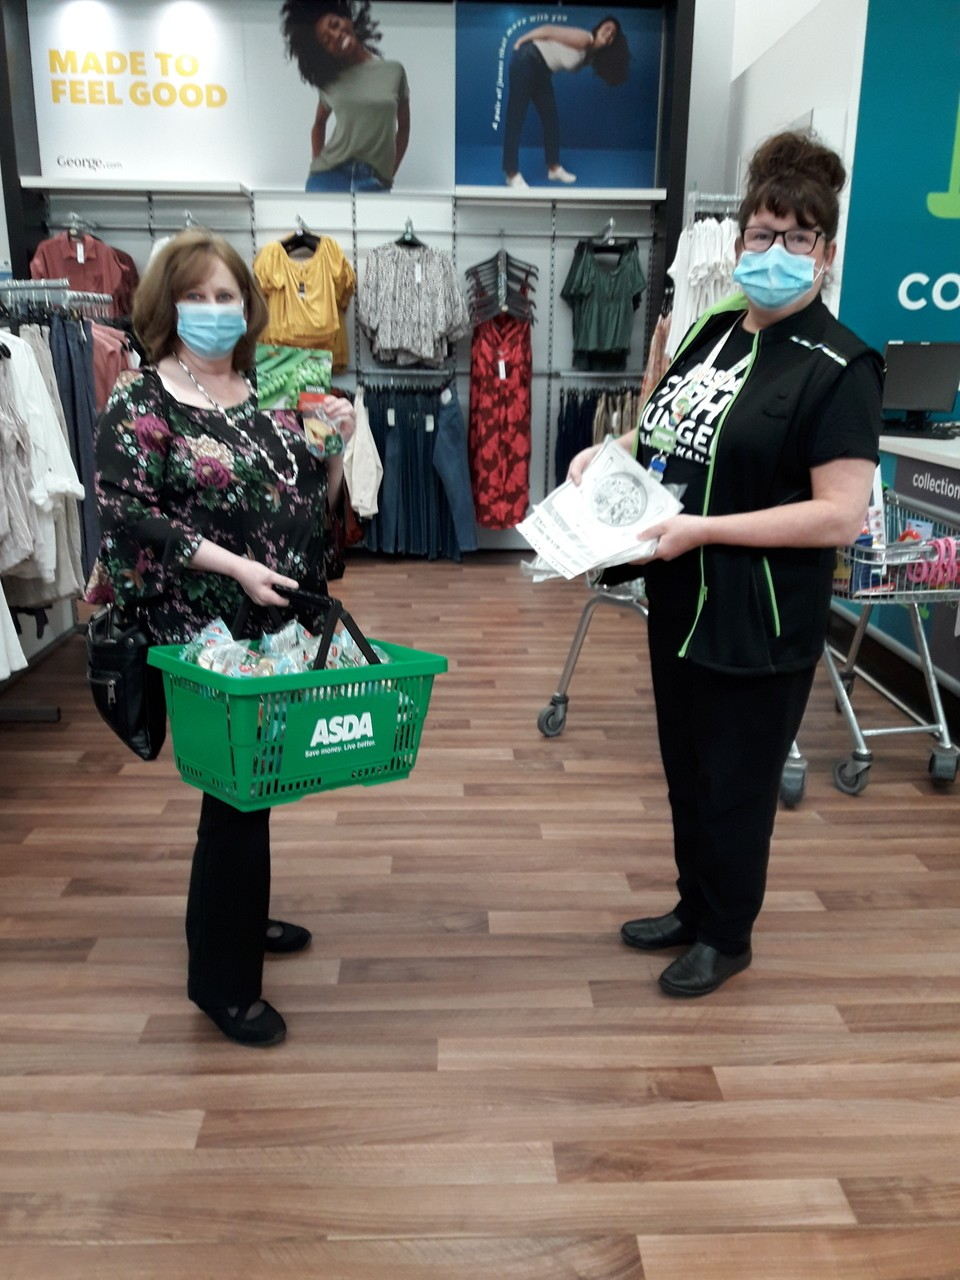 Charleston community gardening project receiving seeds fruit and information sheets for their new local project. | Asda Dundee West